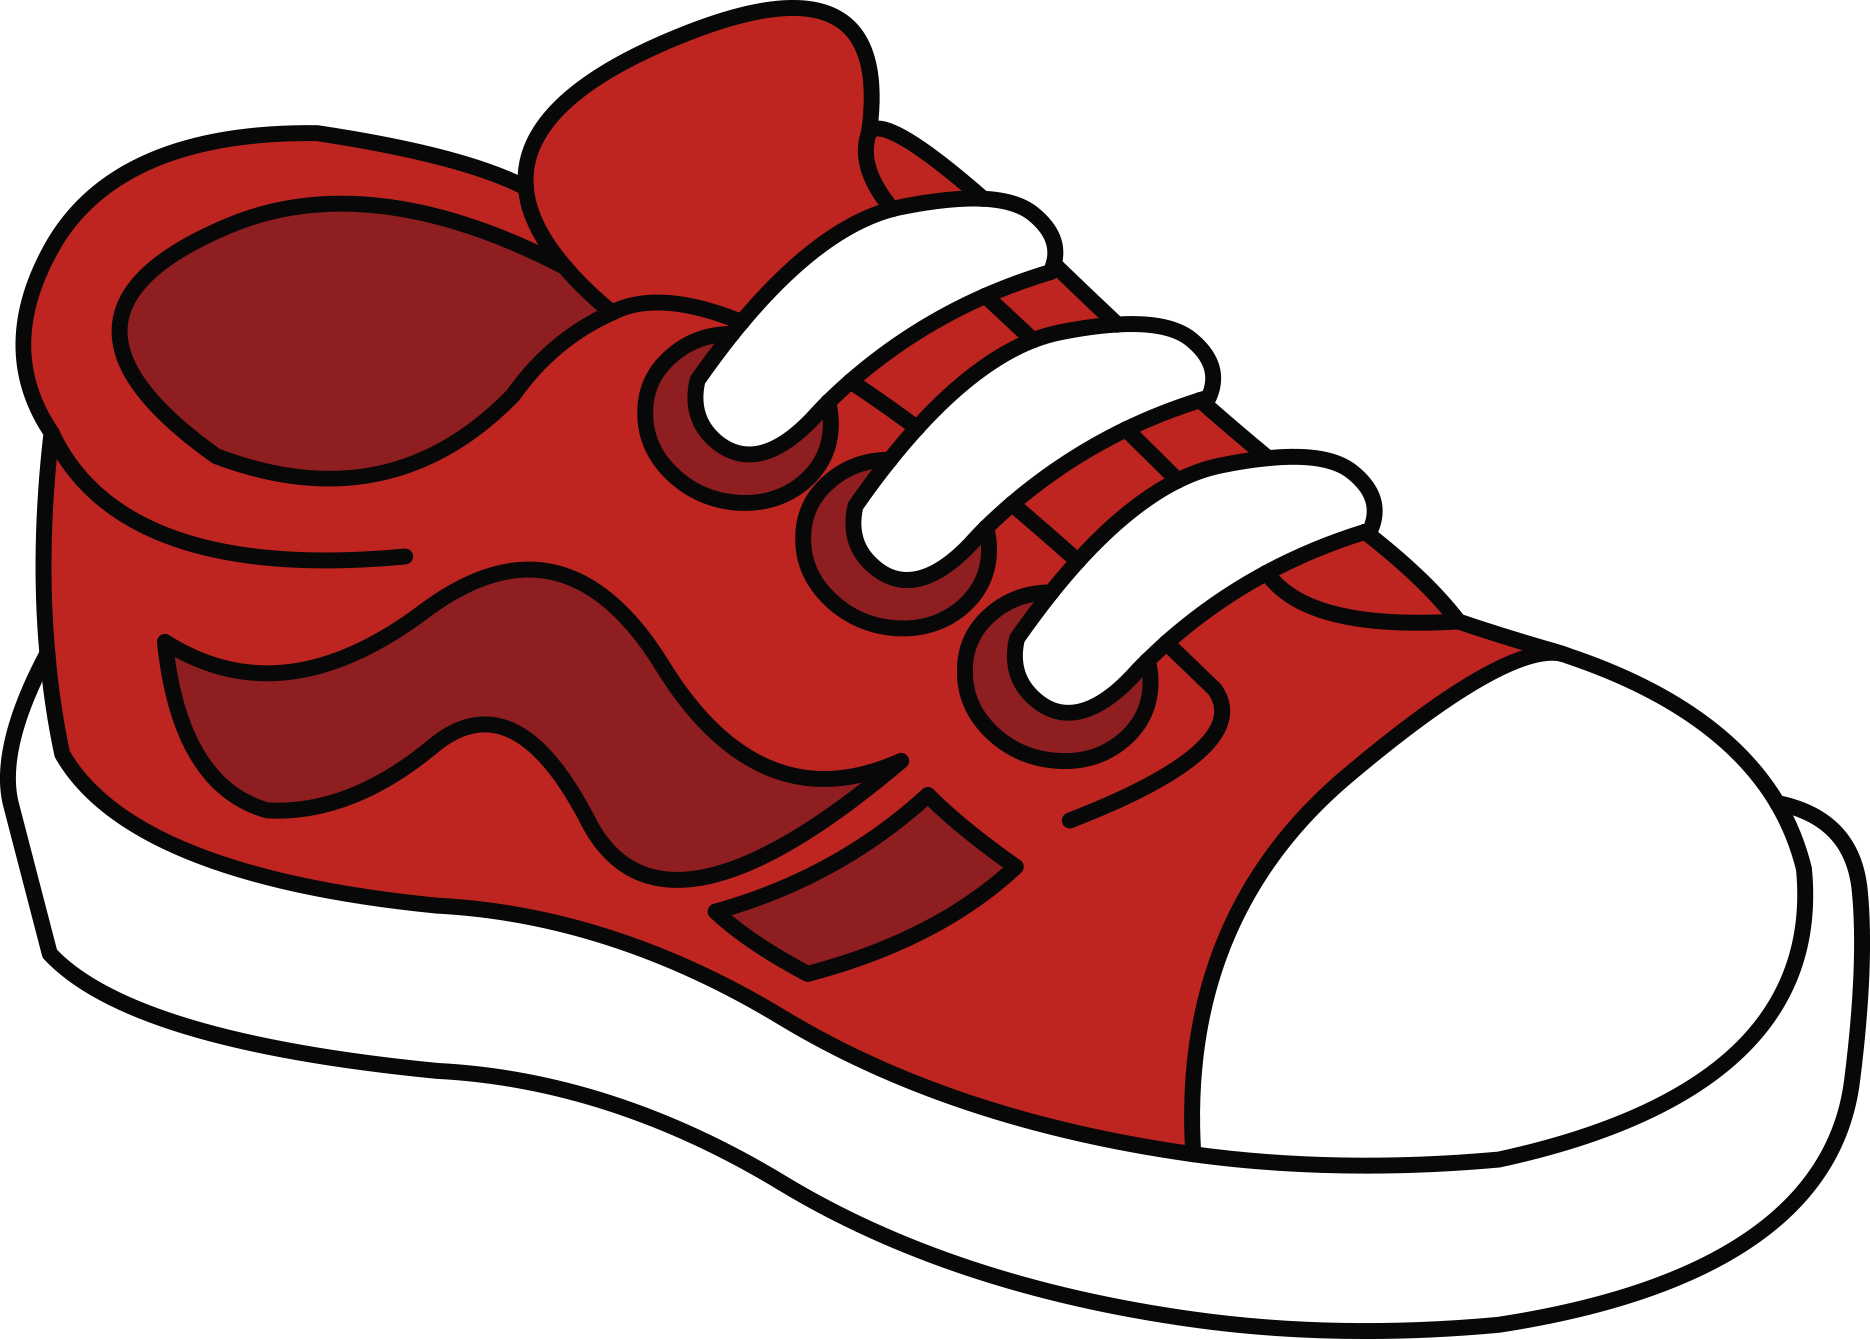 Clip shoes button. Vans clipart at getdrawings